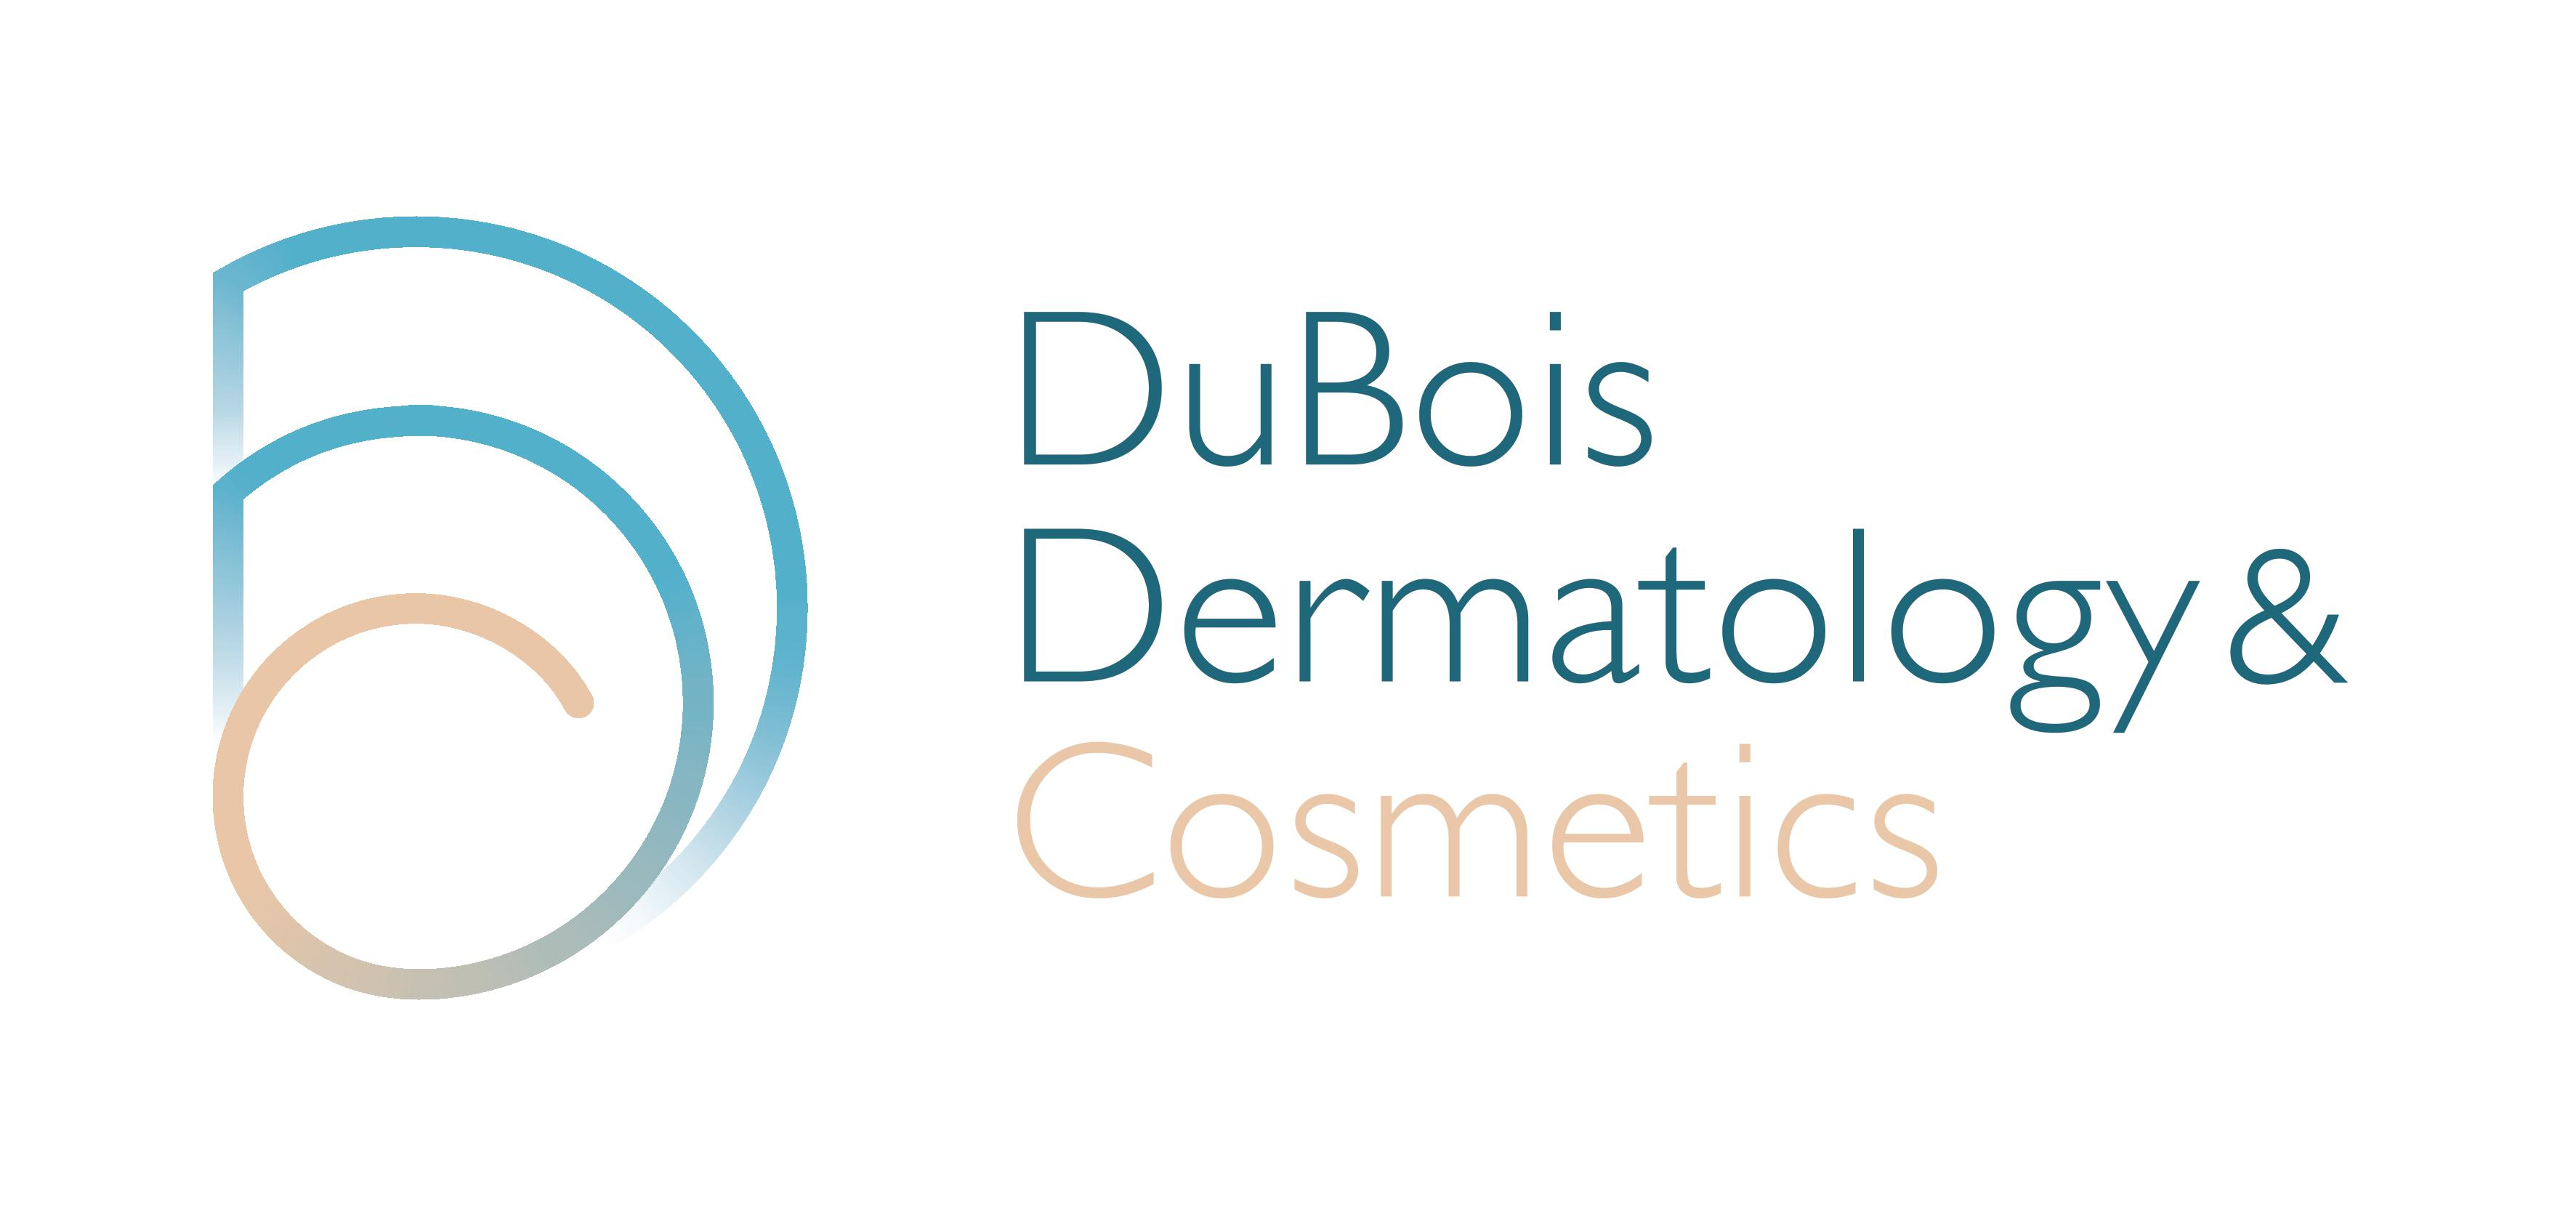 DuBois Dermatology and Cosmetics